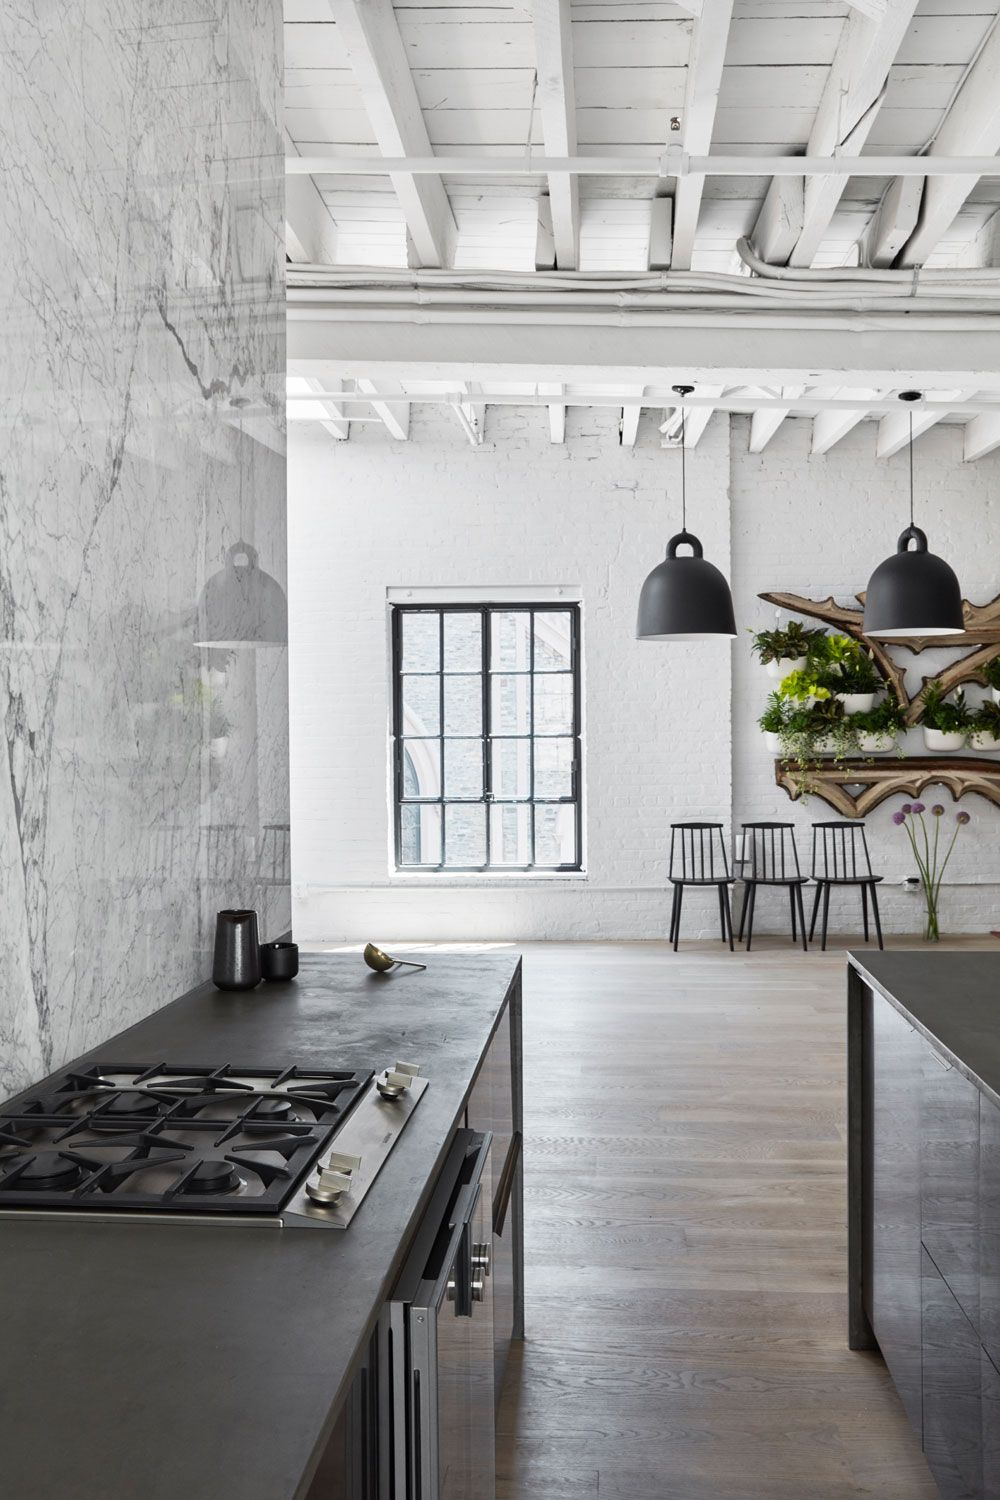 Soho Loft Apartment Interior Minimalism Interior Loft Kitchen